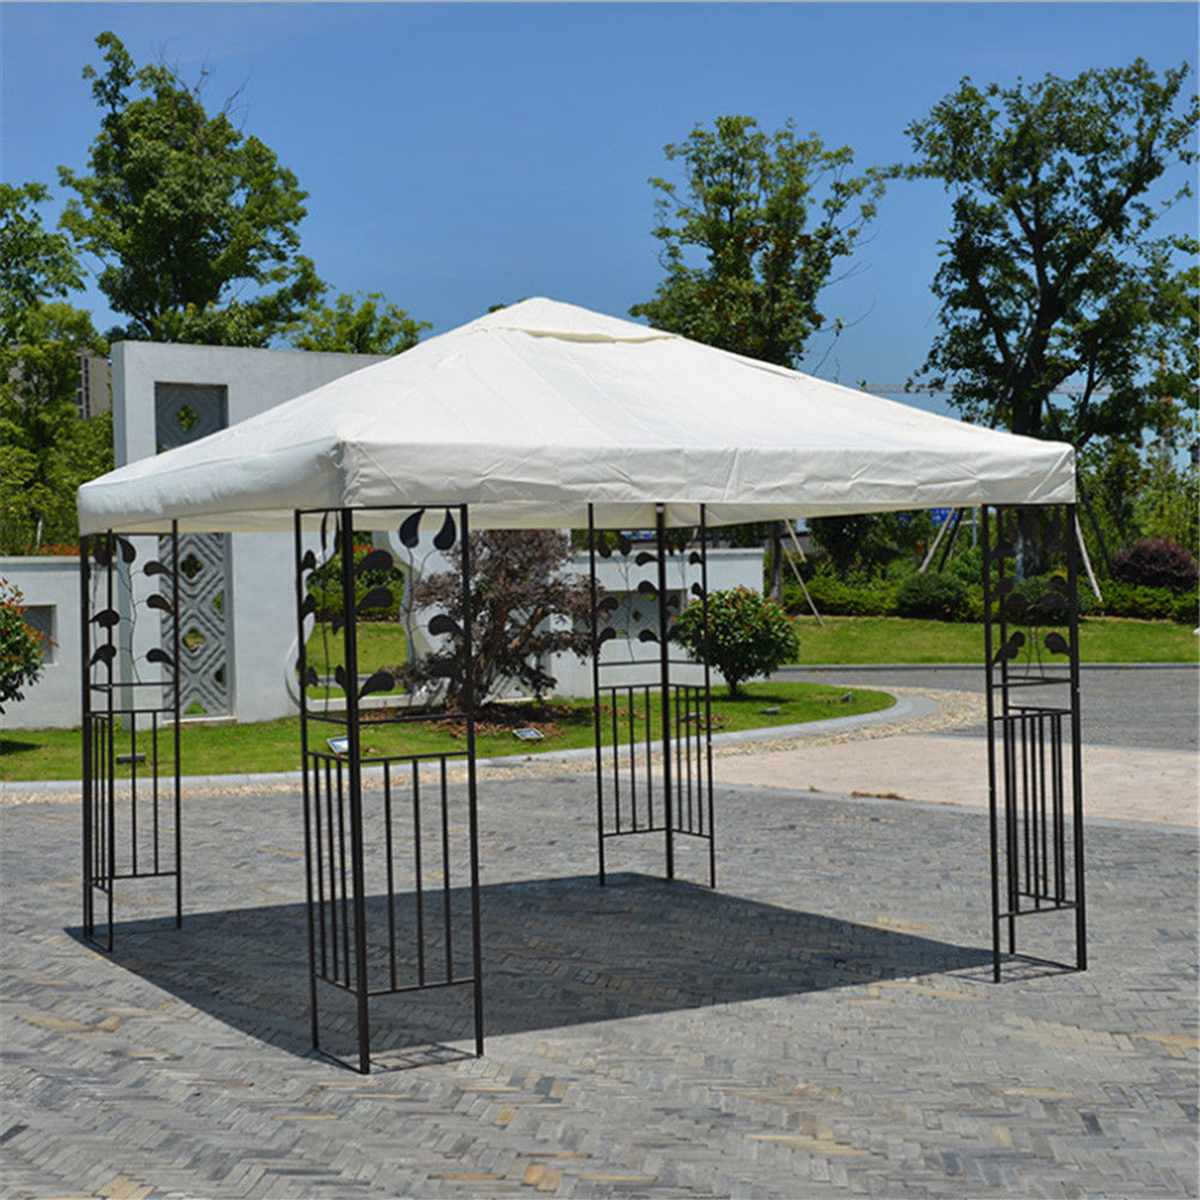 3x3M Canvas Camping Hiking Sun Shelter Outdoor Tent Canopy Top Roof Cover Patio Sun Shade Cloth Shade Shelter Replace Part